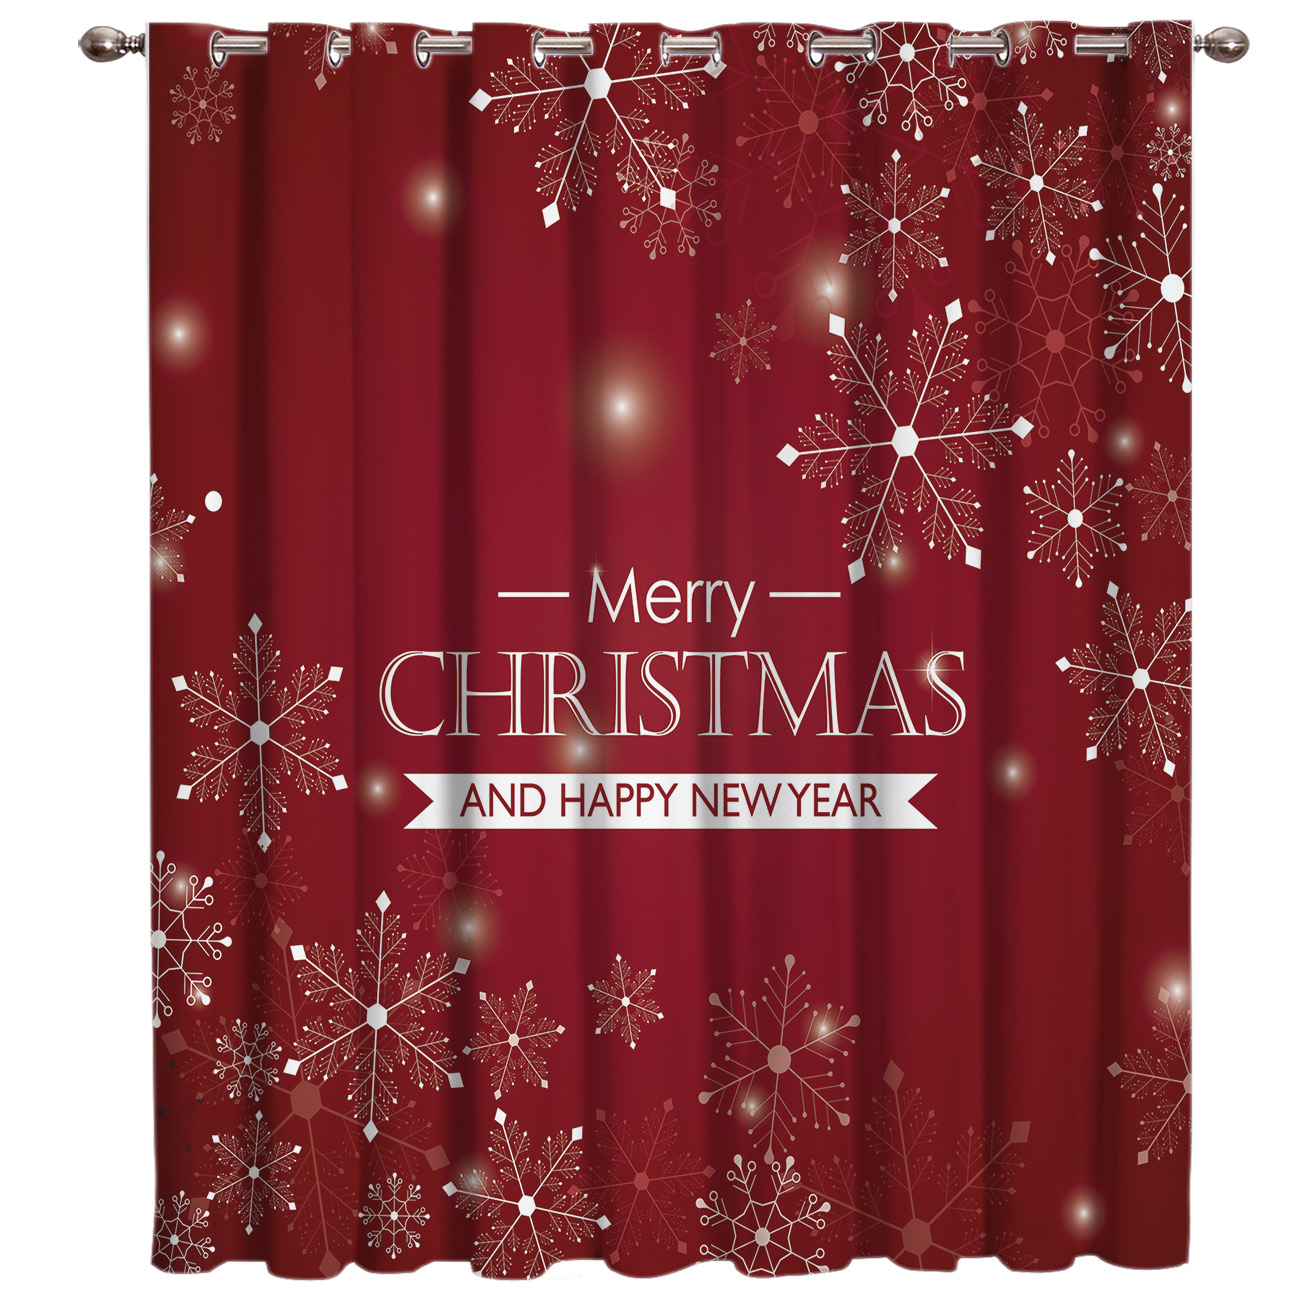 Merry Christams And Happy New Year Window Treatments Curtains Valance Living Room Decor Kitchen Print Kids Window Treatment